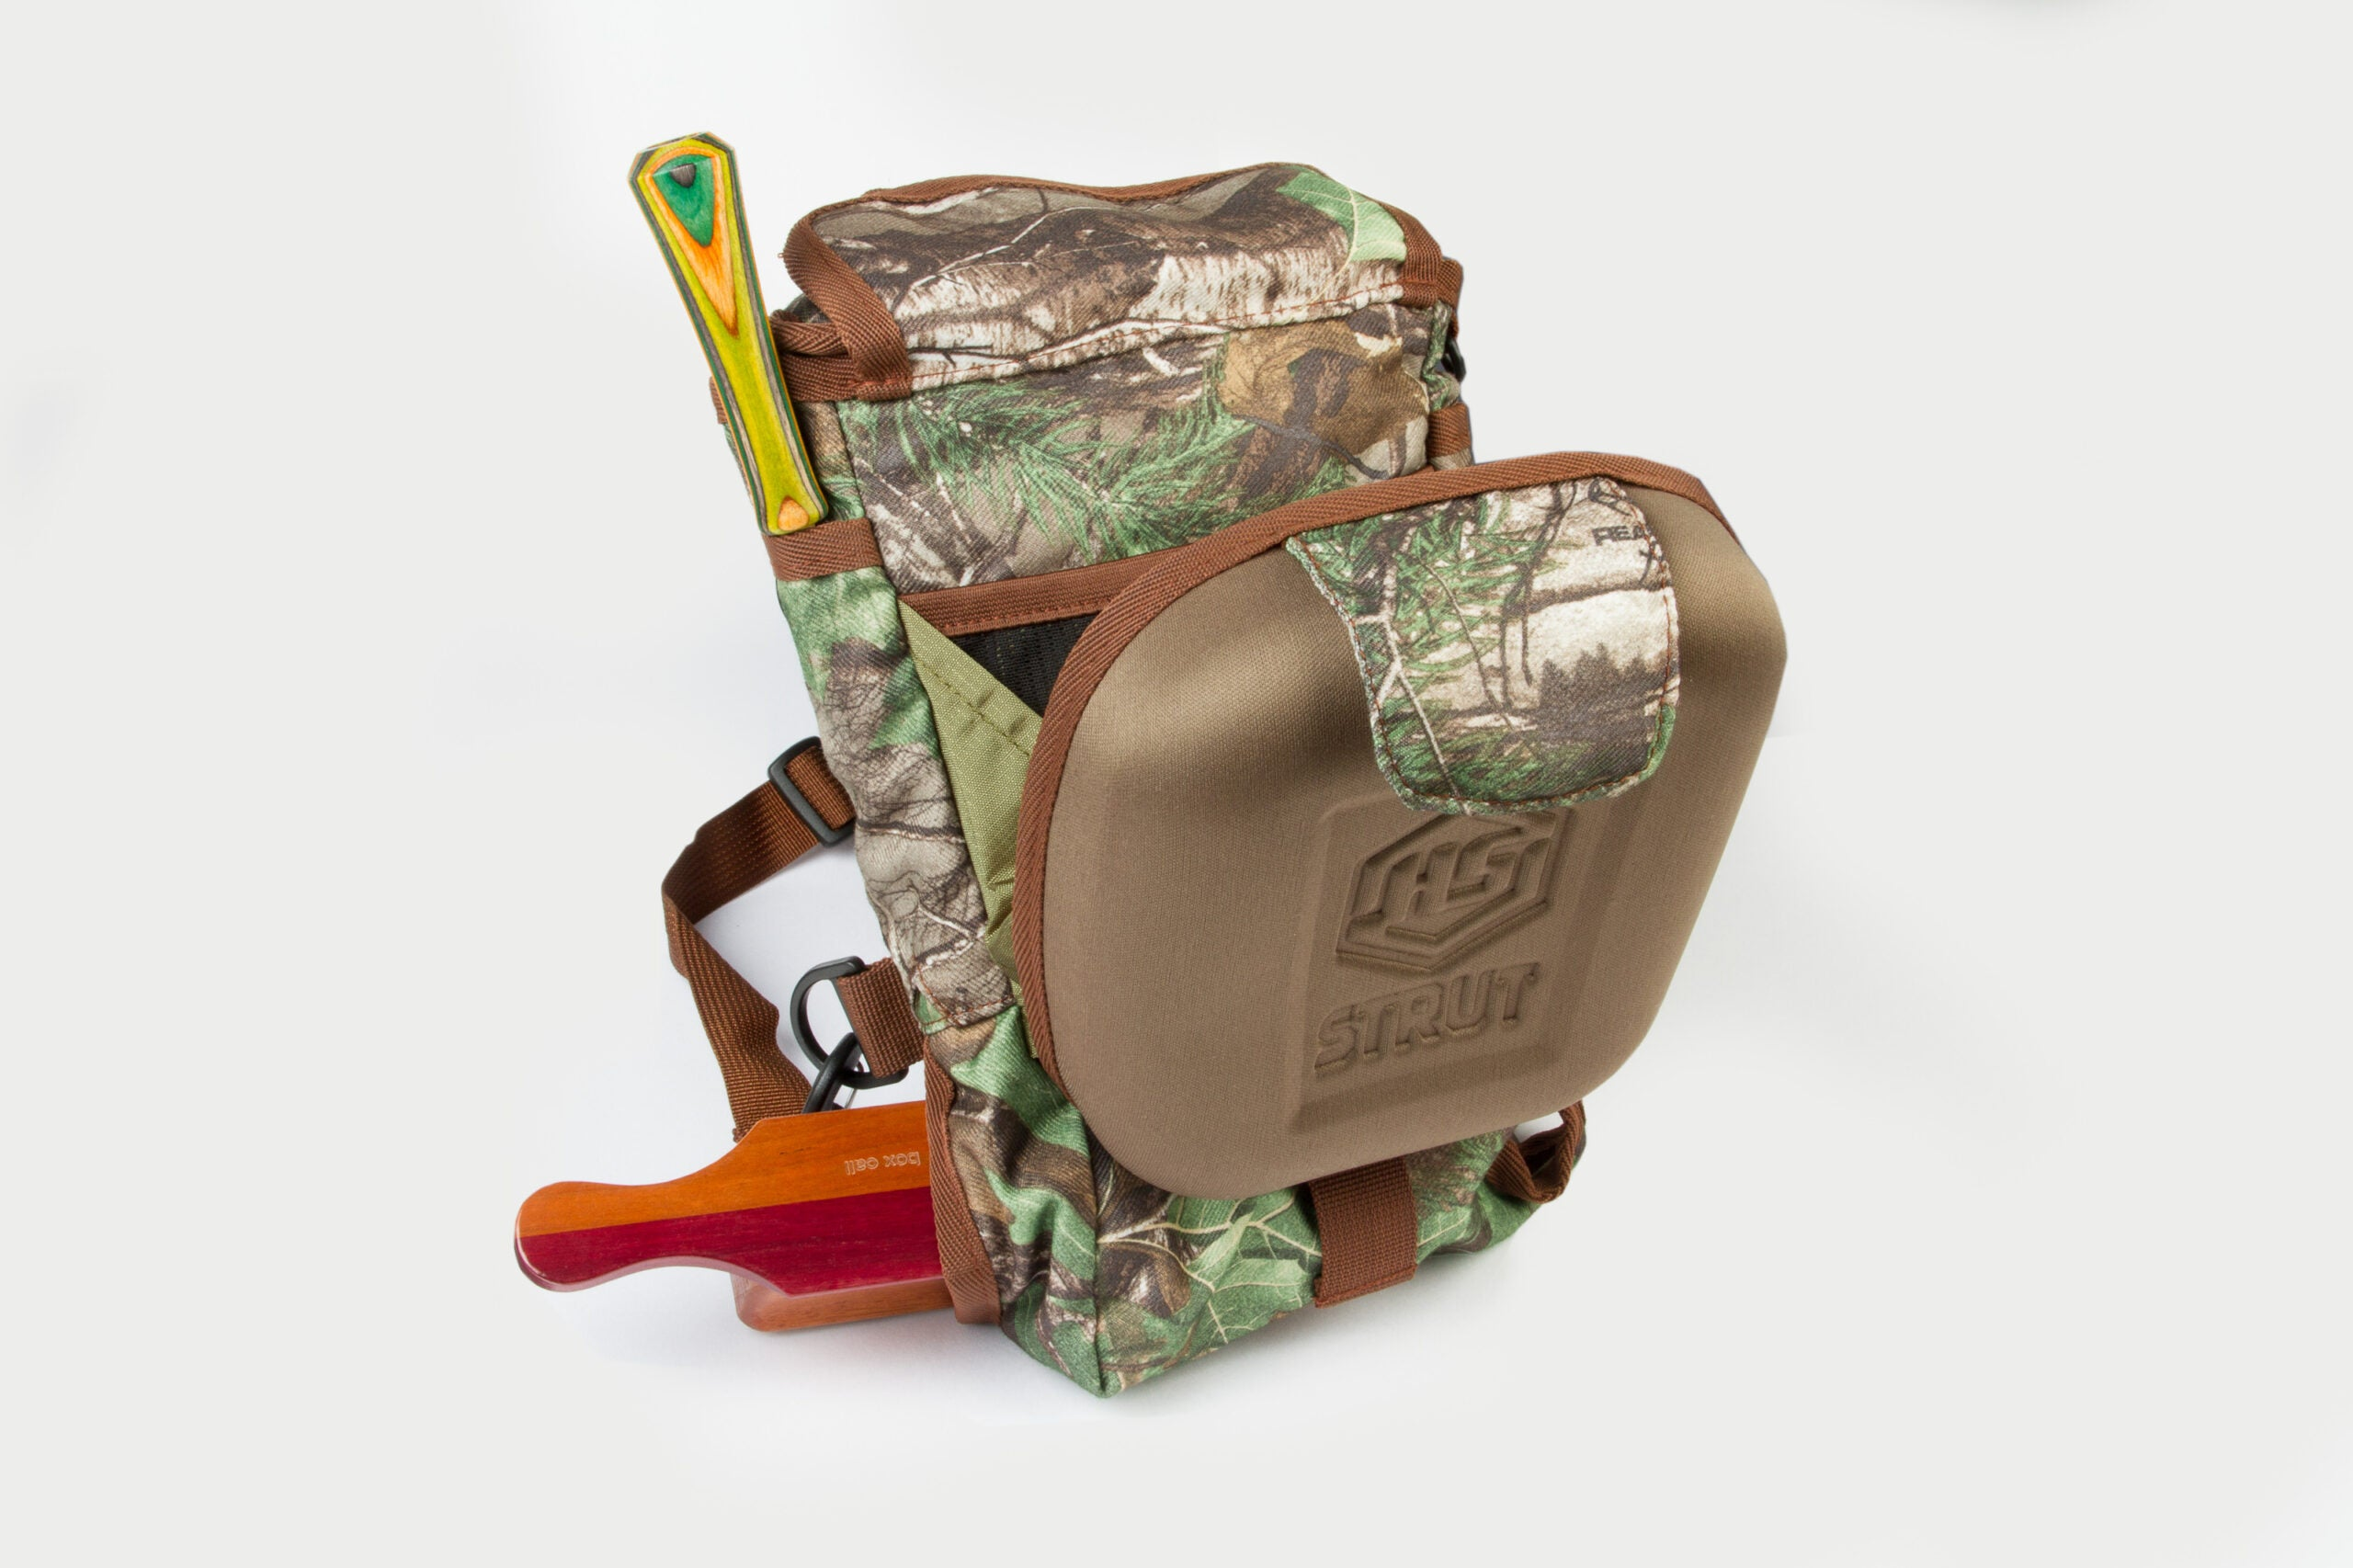 HS Chest Pack